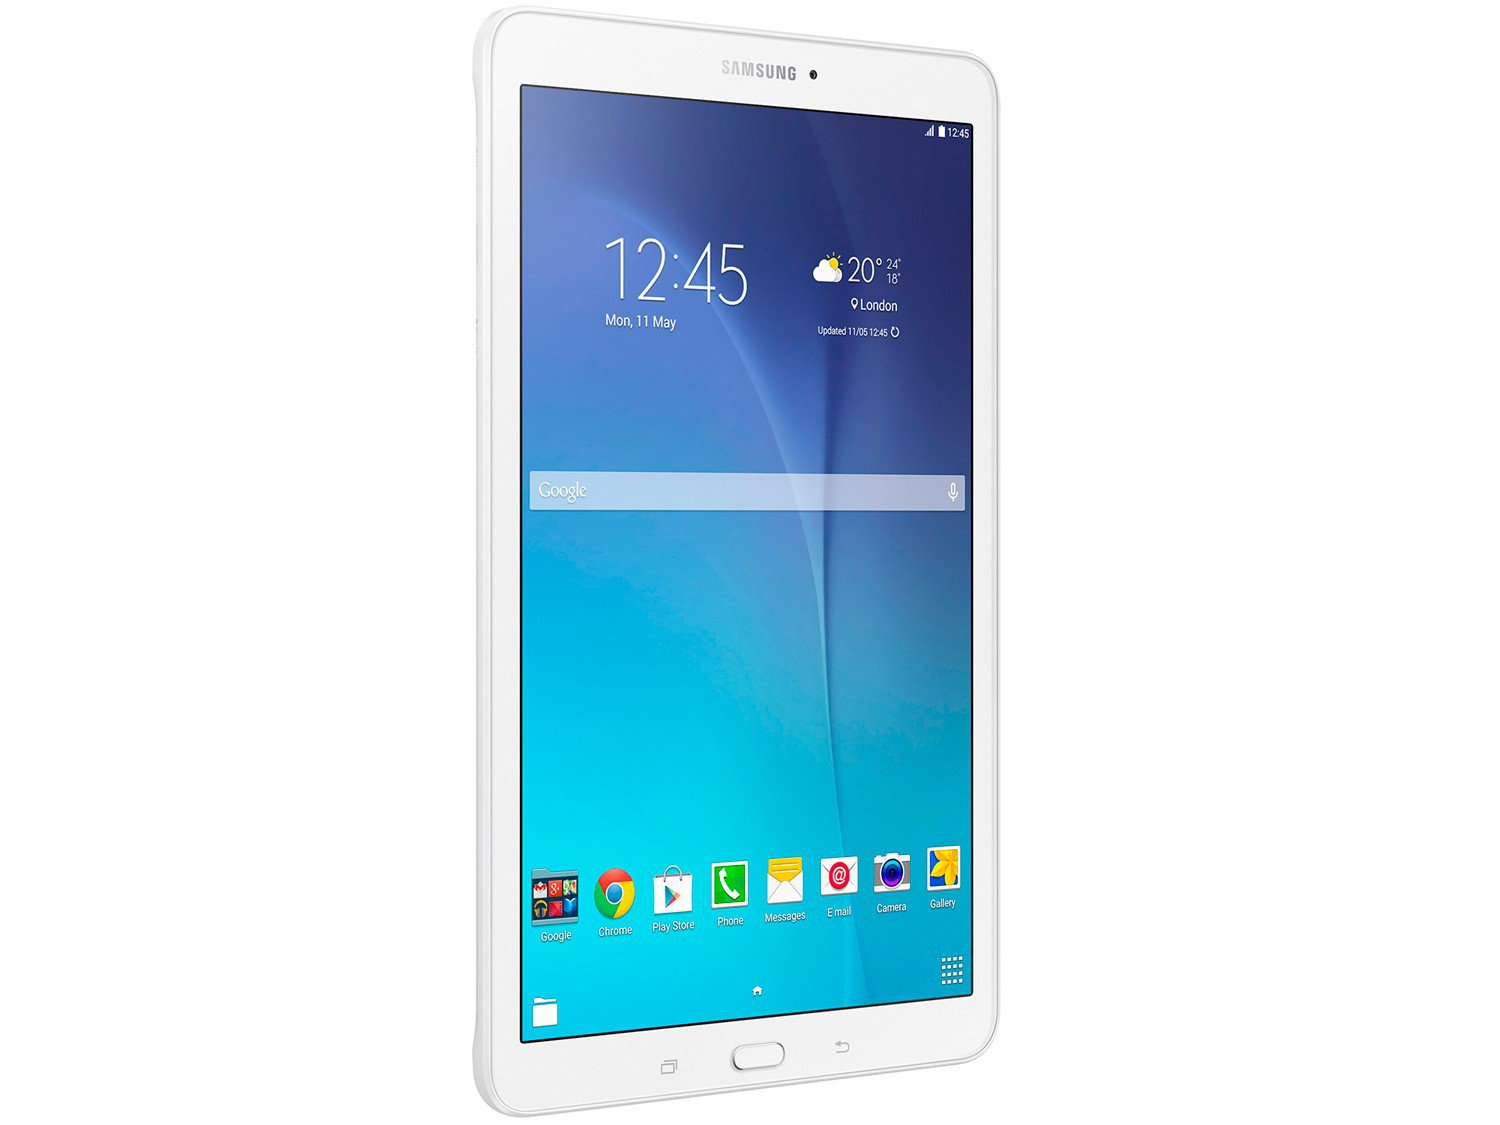 Foto 5 - Tablet Samsung Galaxy Tab E T560 8GB 9,6 Wi-Fi - Android 4.4 Proc. Quad Core Câm. 5MP + Frontal